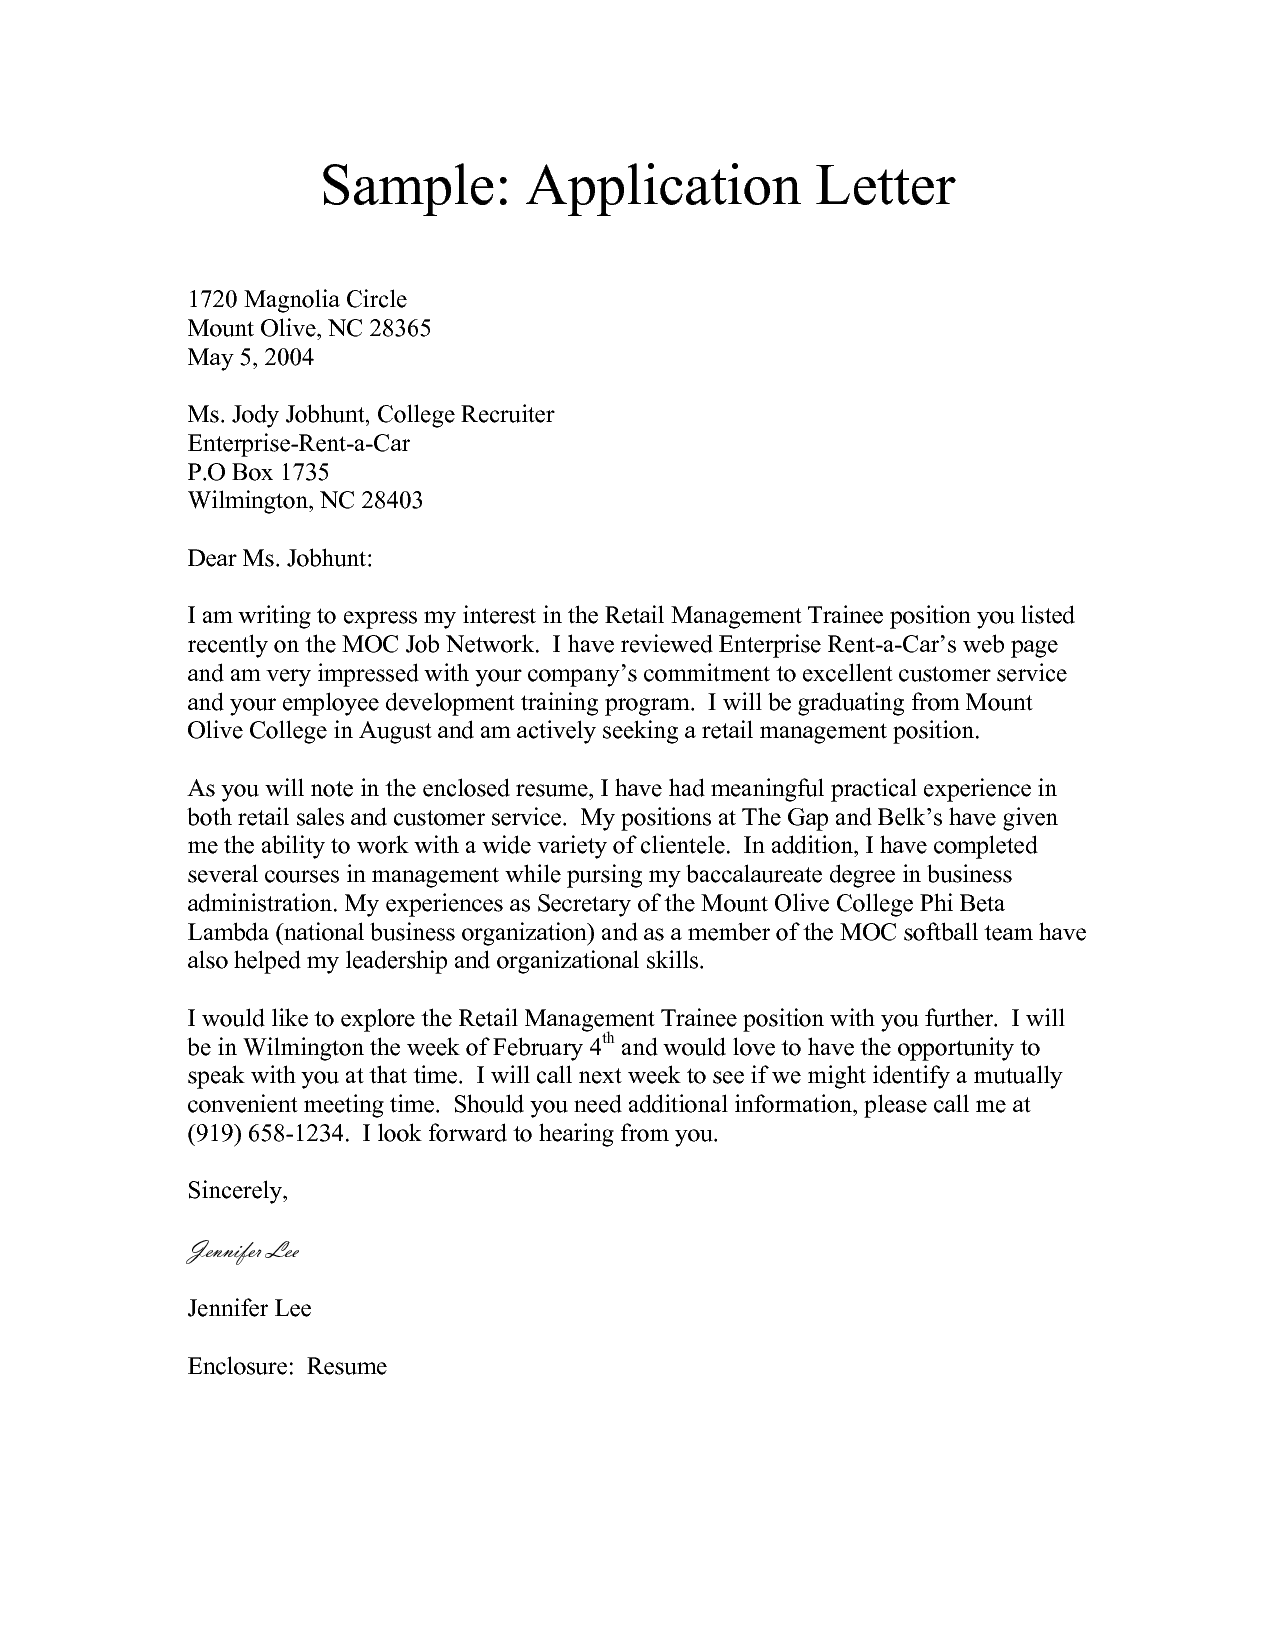 How to write a letter of application university